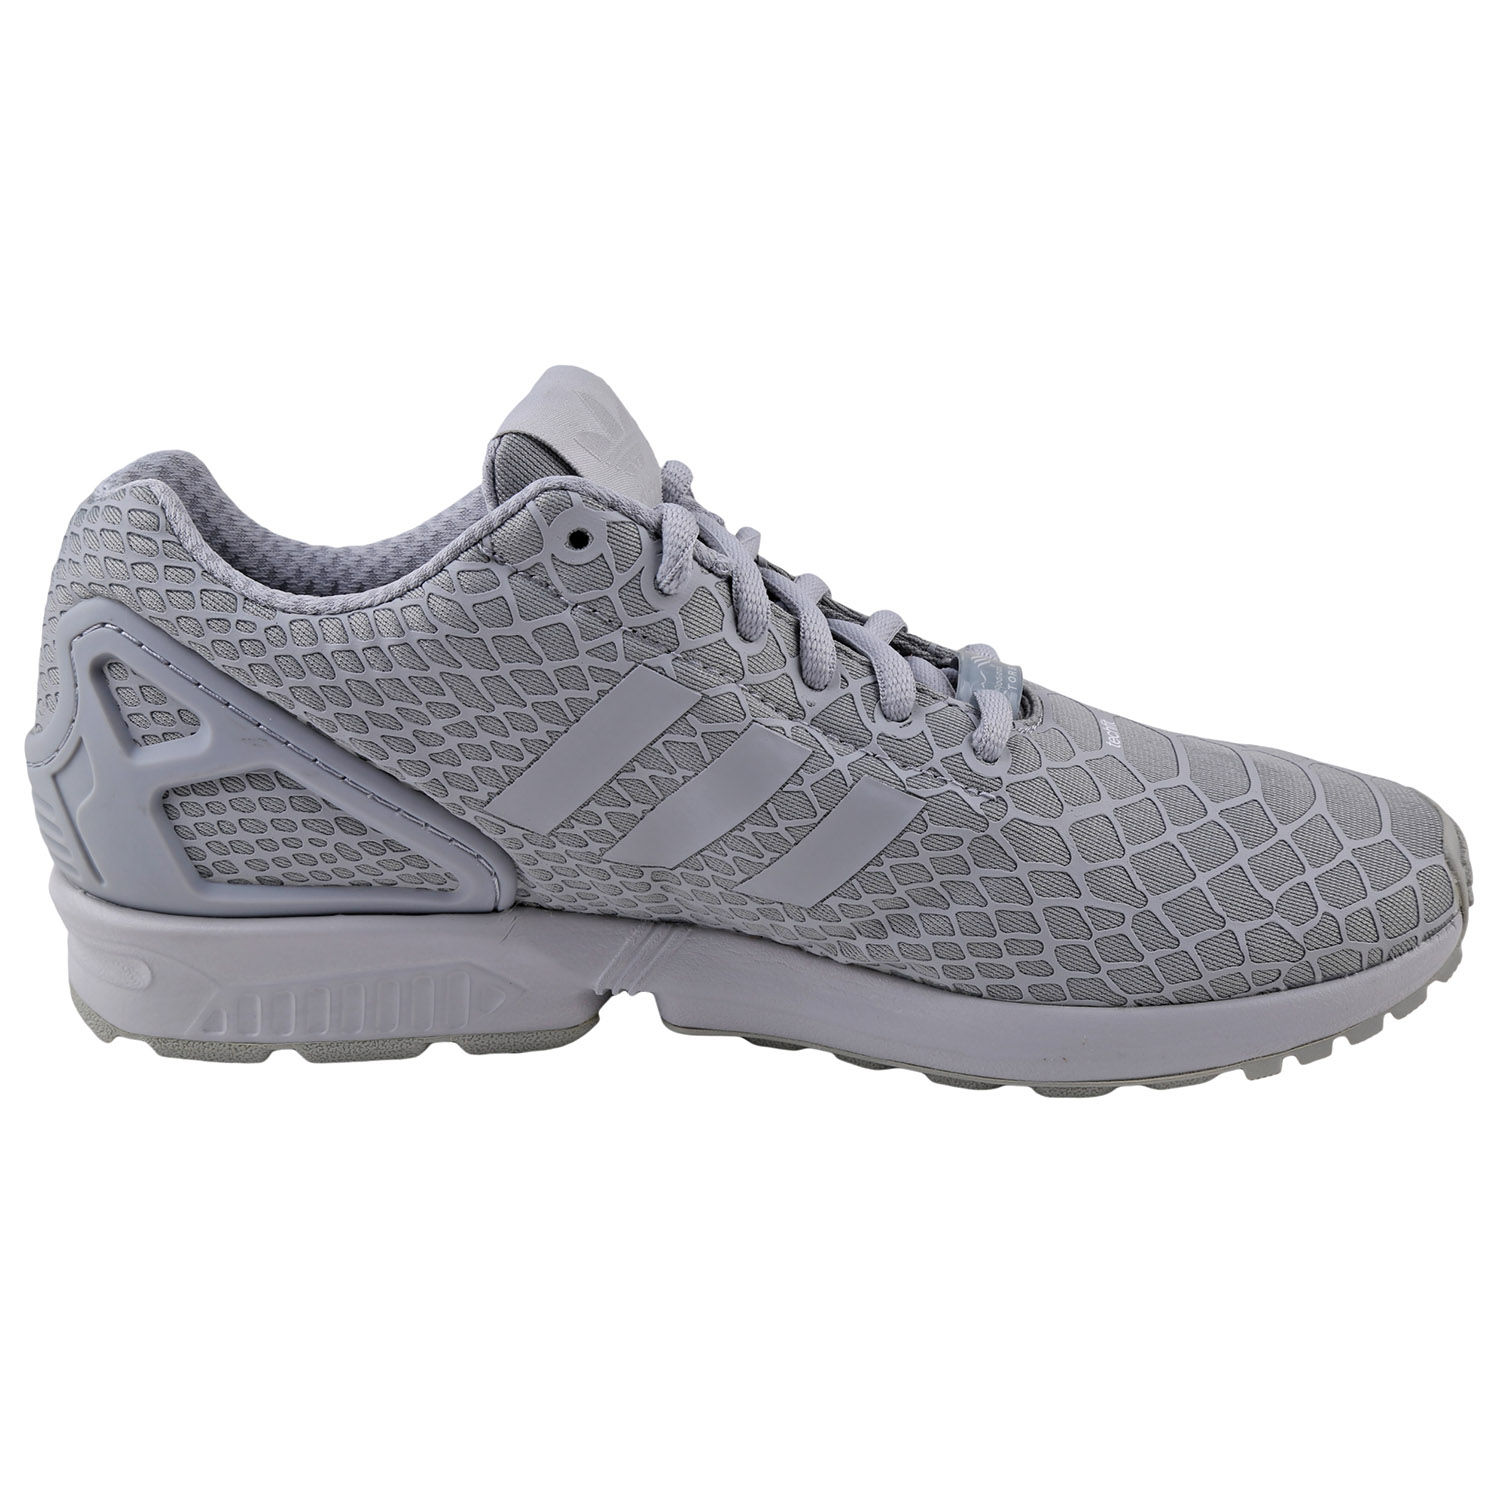 Details about Adidas Mens ZX Flux Techfit Running Shoes AF6389 CLEAR SUPYEL CLEAR SUPJAU